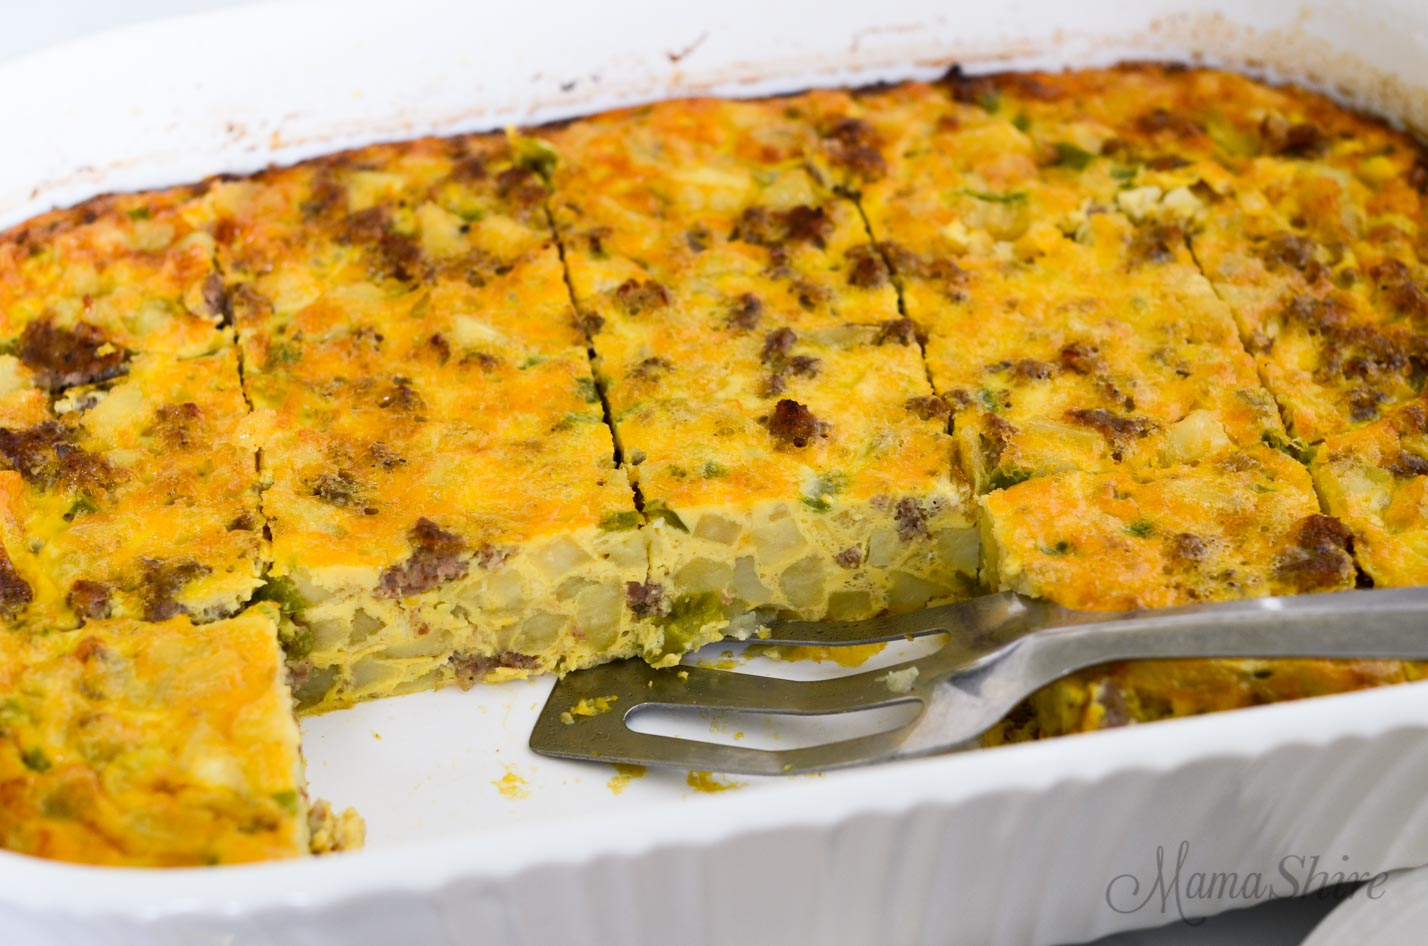 Breakfast casserole with hashbrowns. .